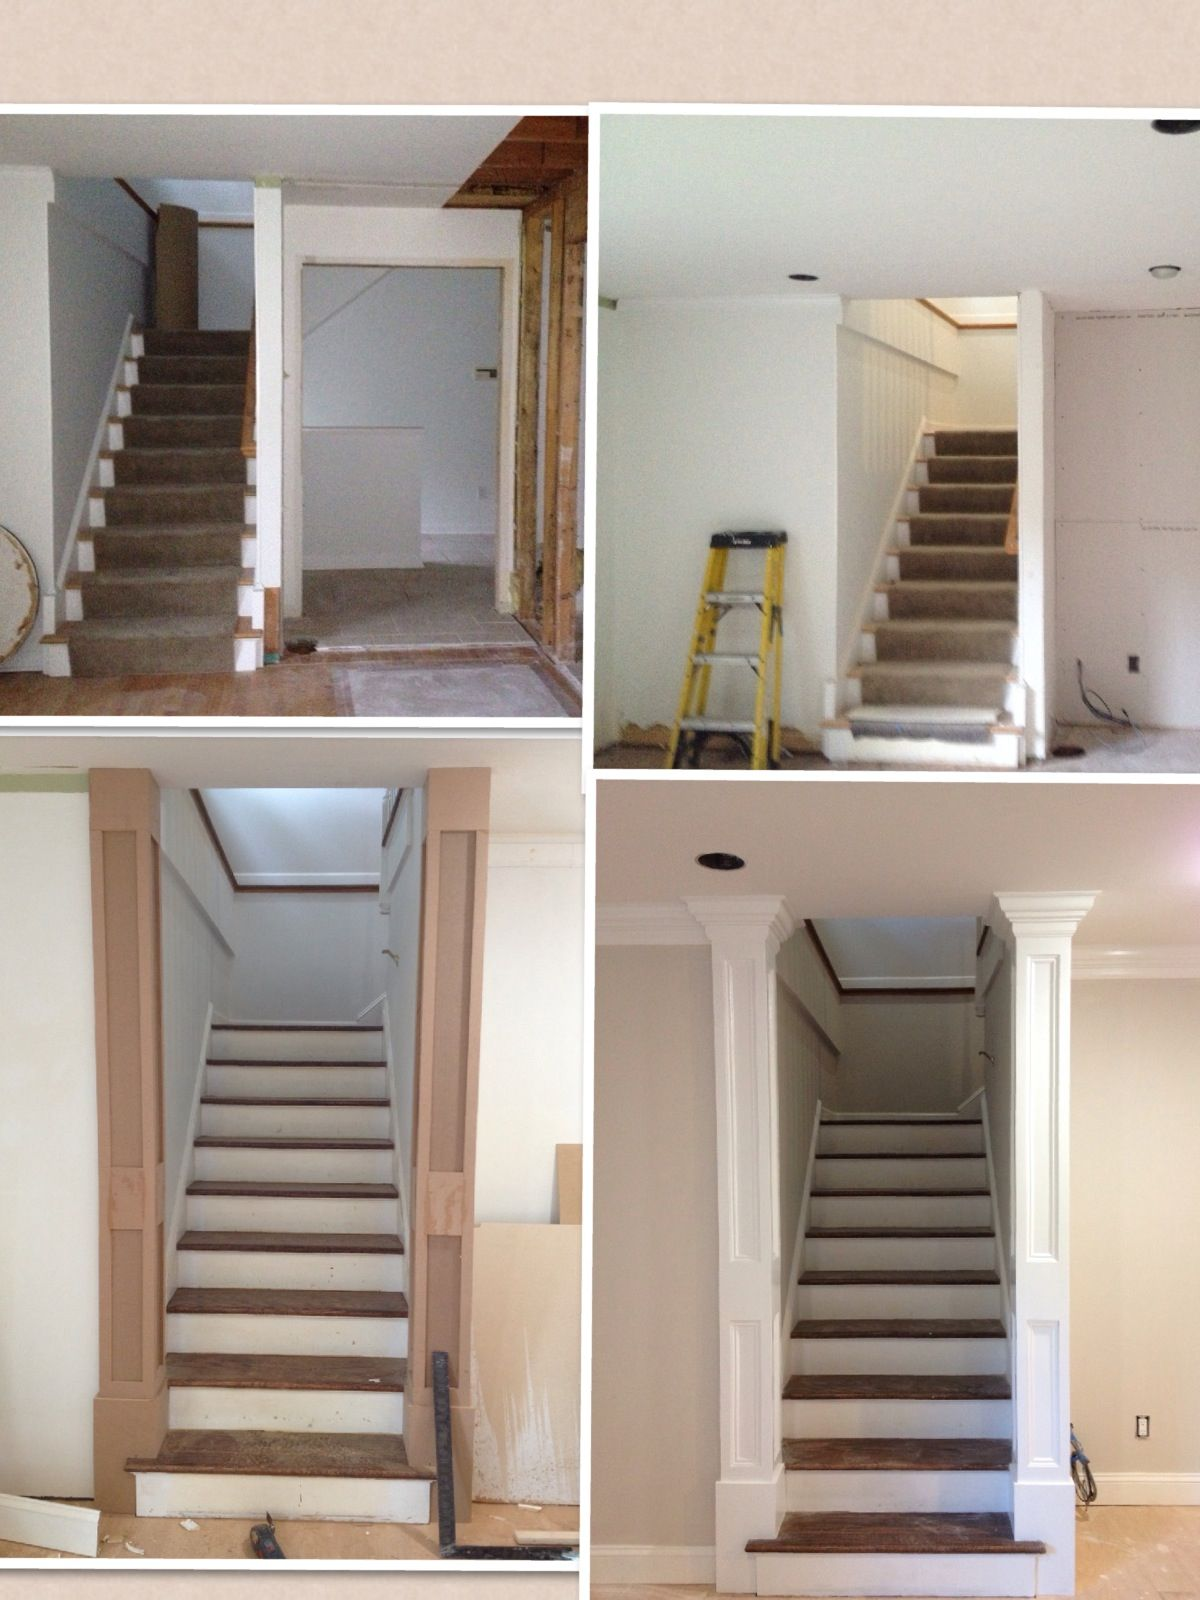 Best Columns Added To A Staircase Good For Dressing Up Stairs To Bonus Home Design Plans 400 x 300